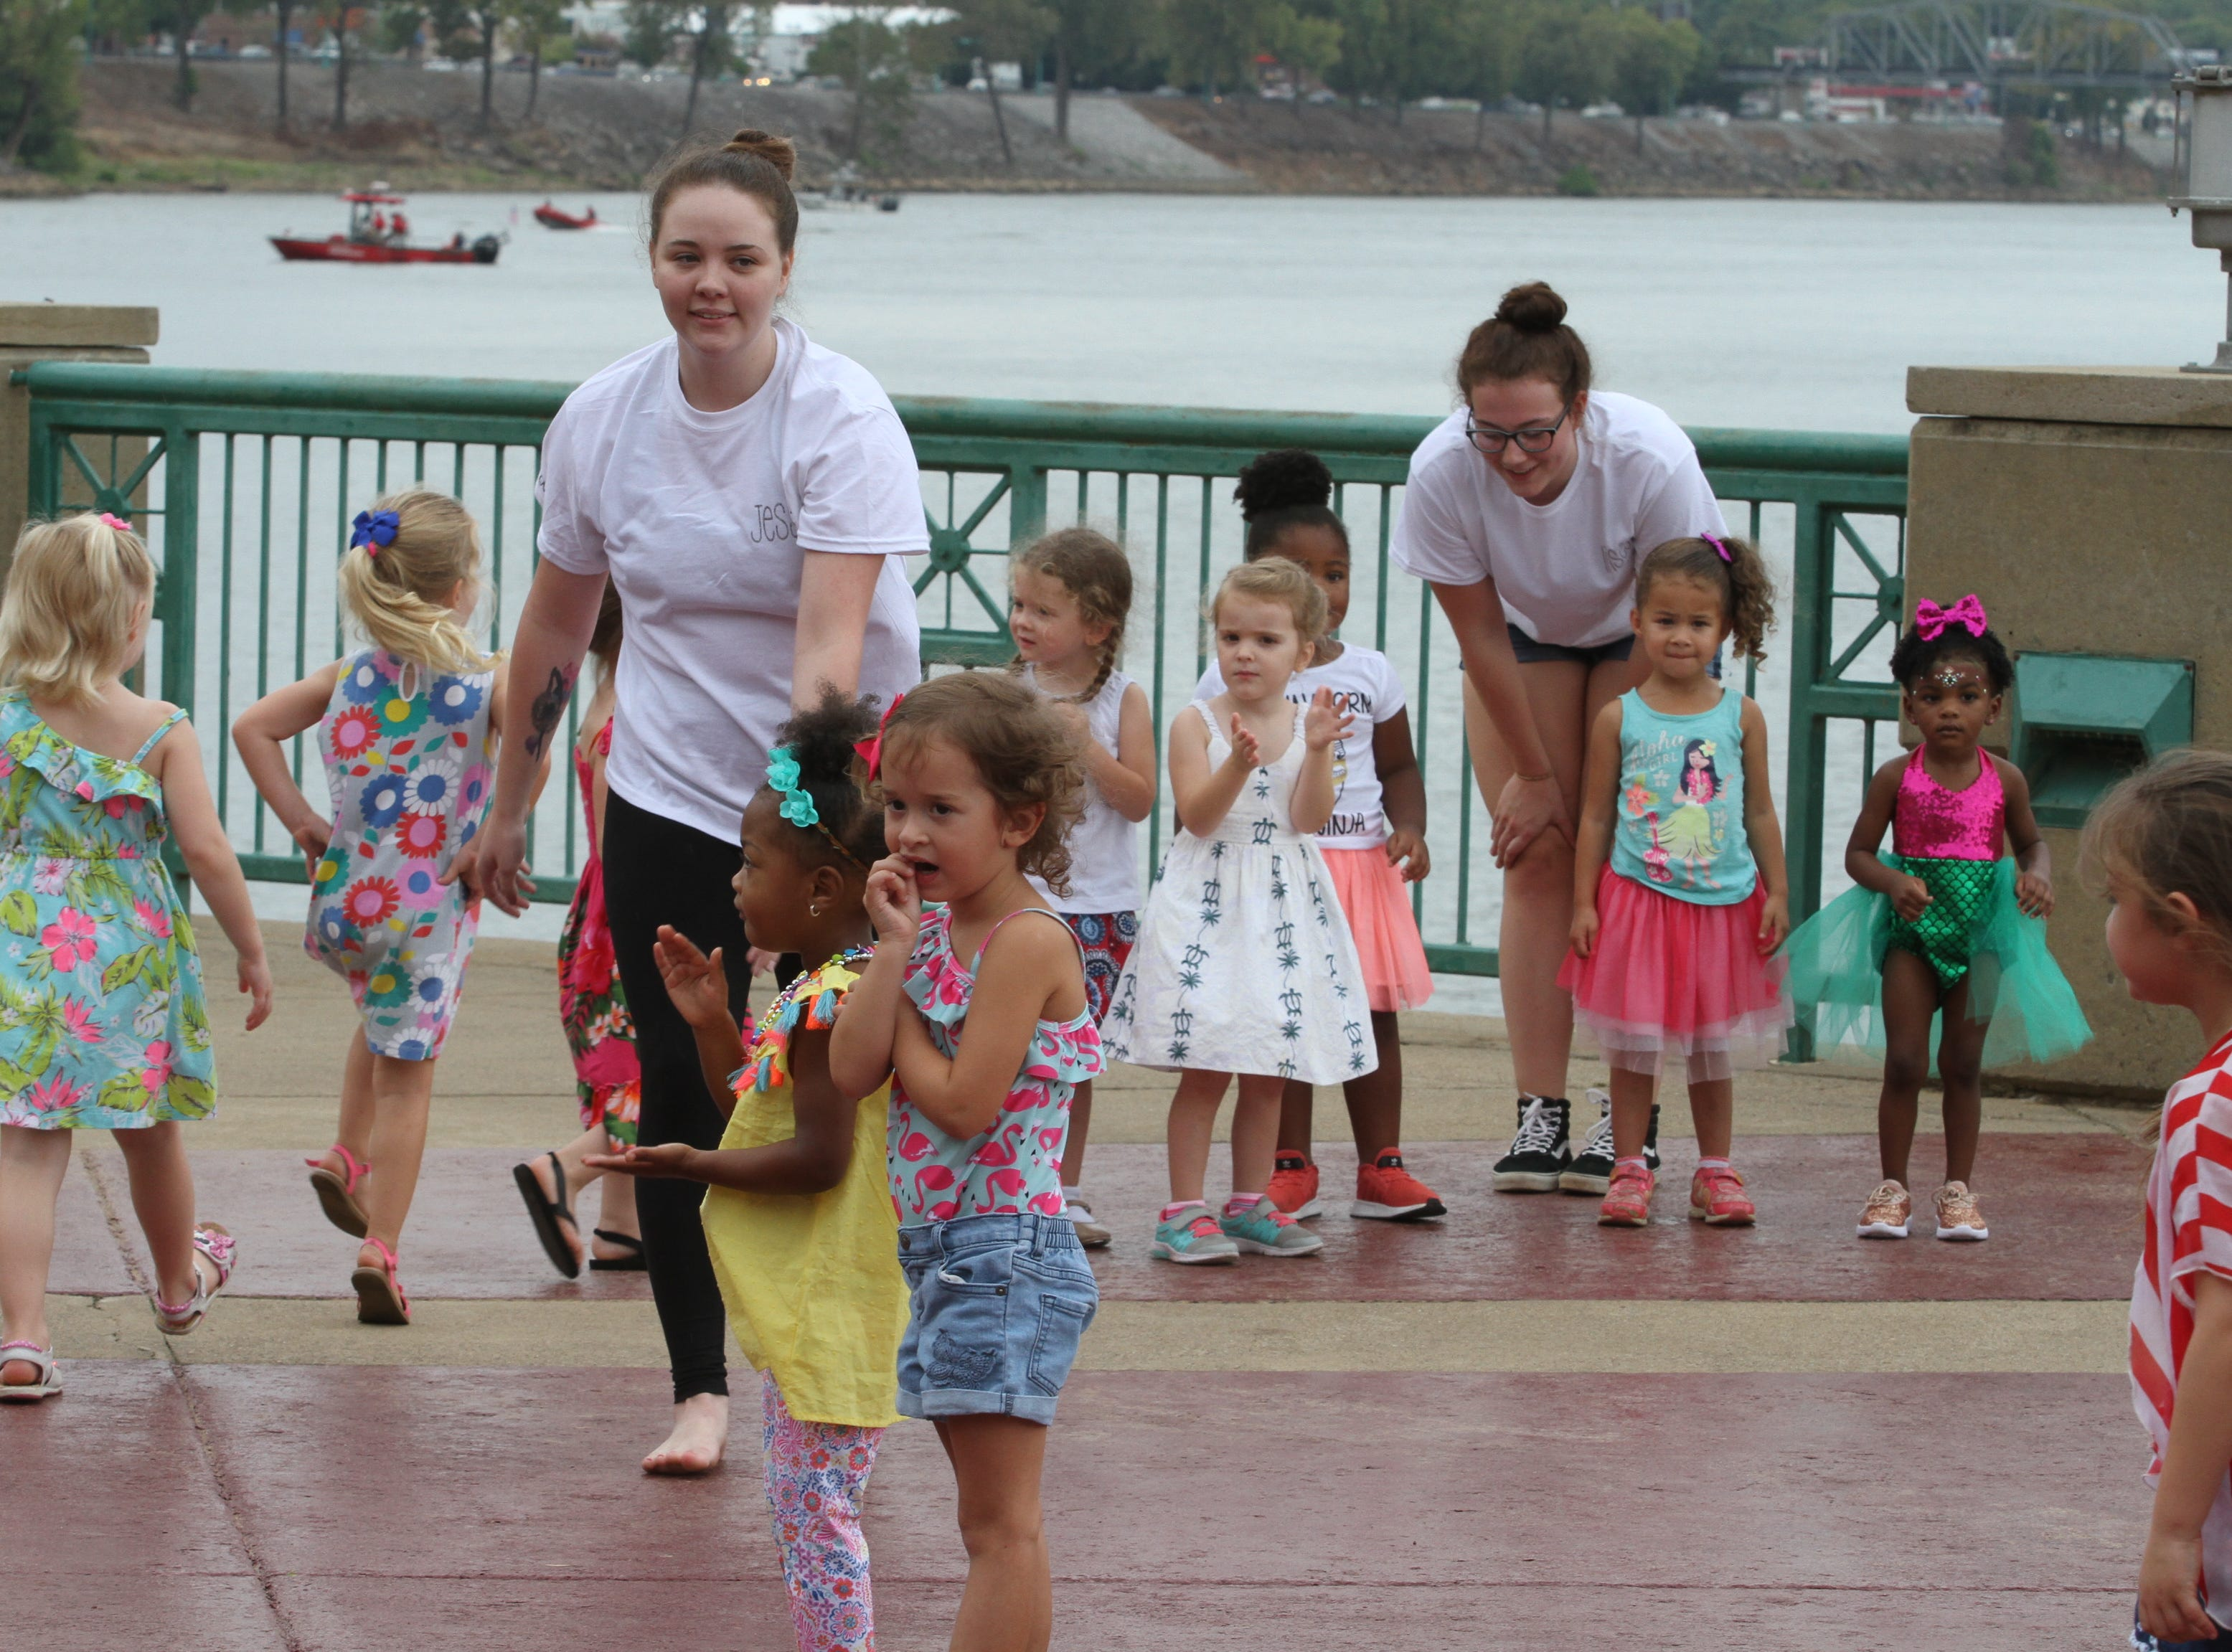 Rain curtailed activities and performances at Clarksville Riverfest on Saturday, Sept. 8, 2018